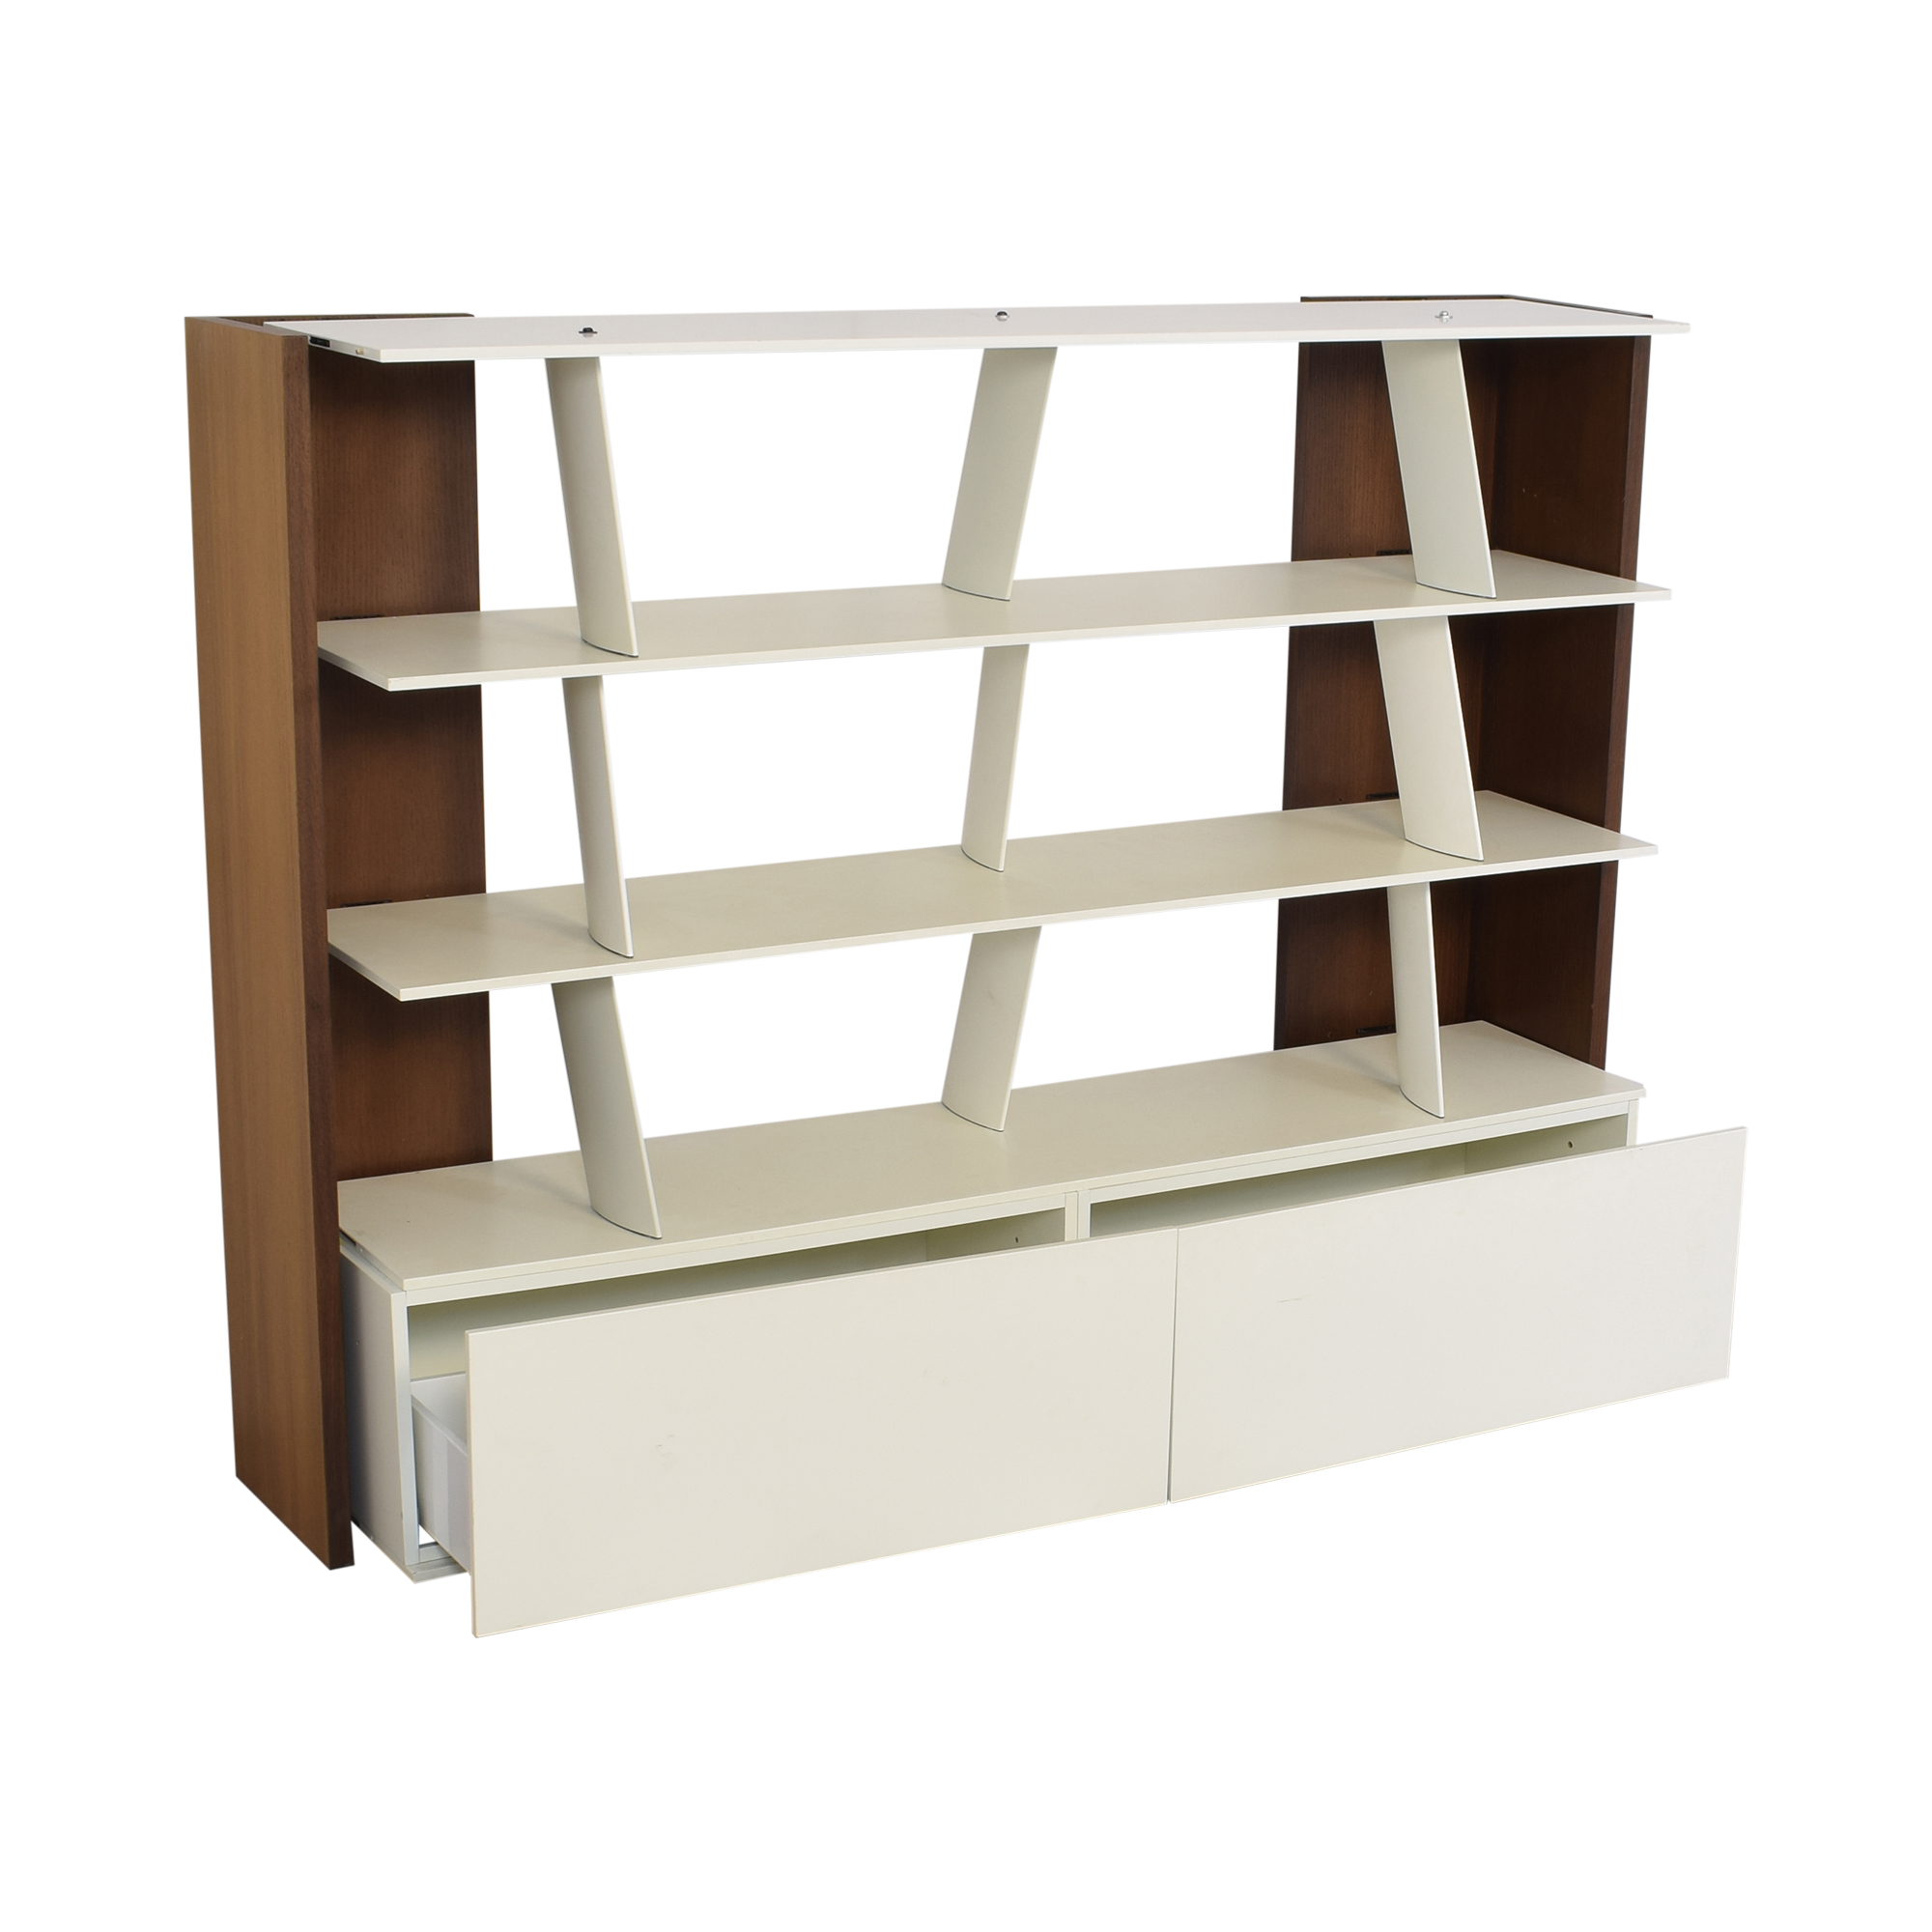 Koleksiyon Koleksiyon VIS S0 Lacquered Side Media Unit Storage